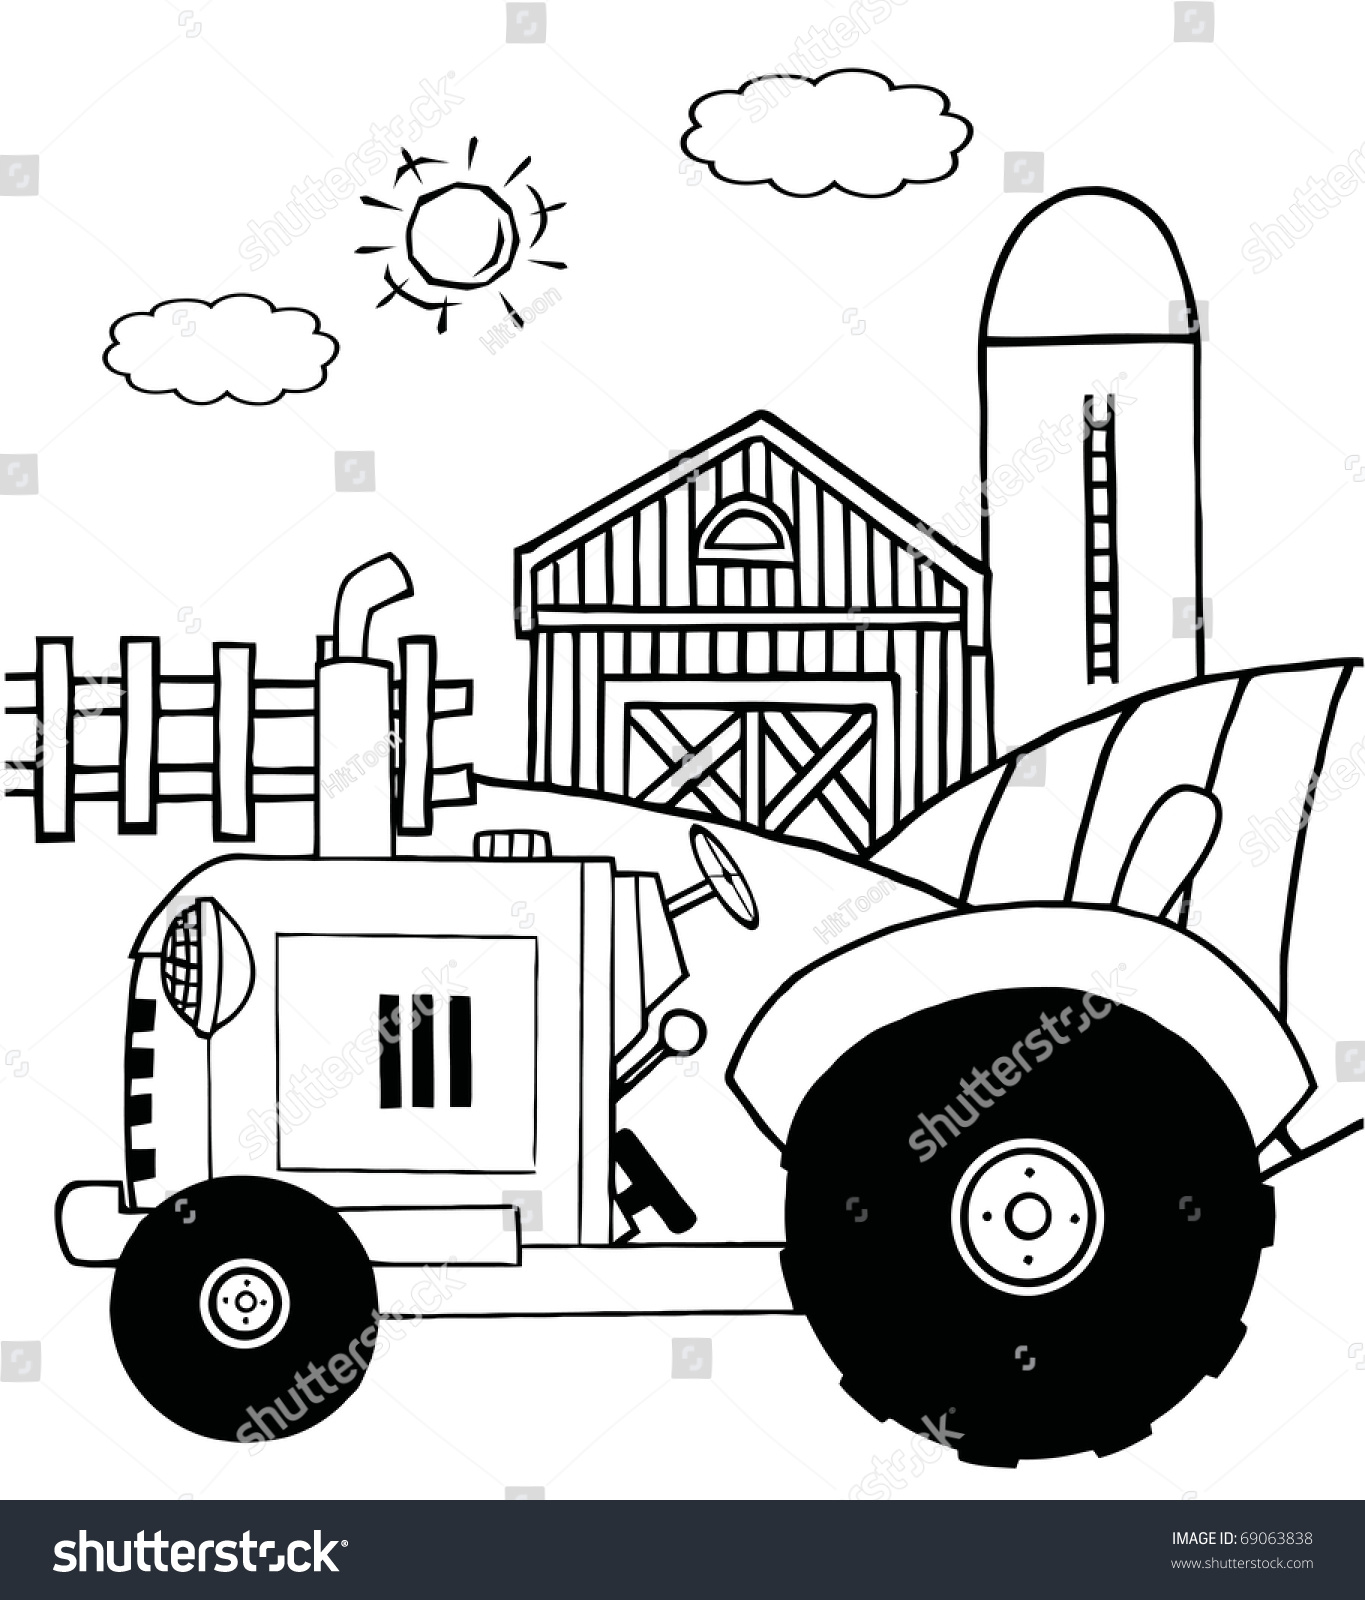 barns coloring pages of farm silos eliolera - Barns Coloring Pages Farm Silos